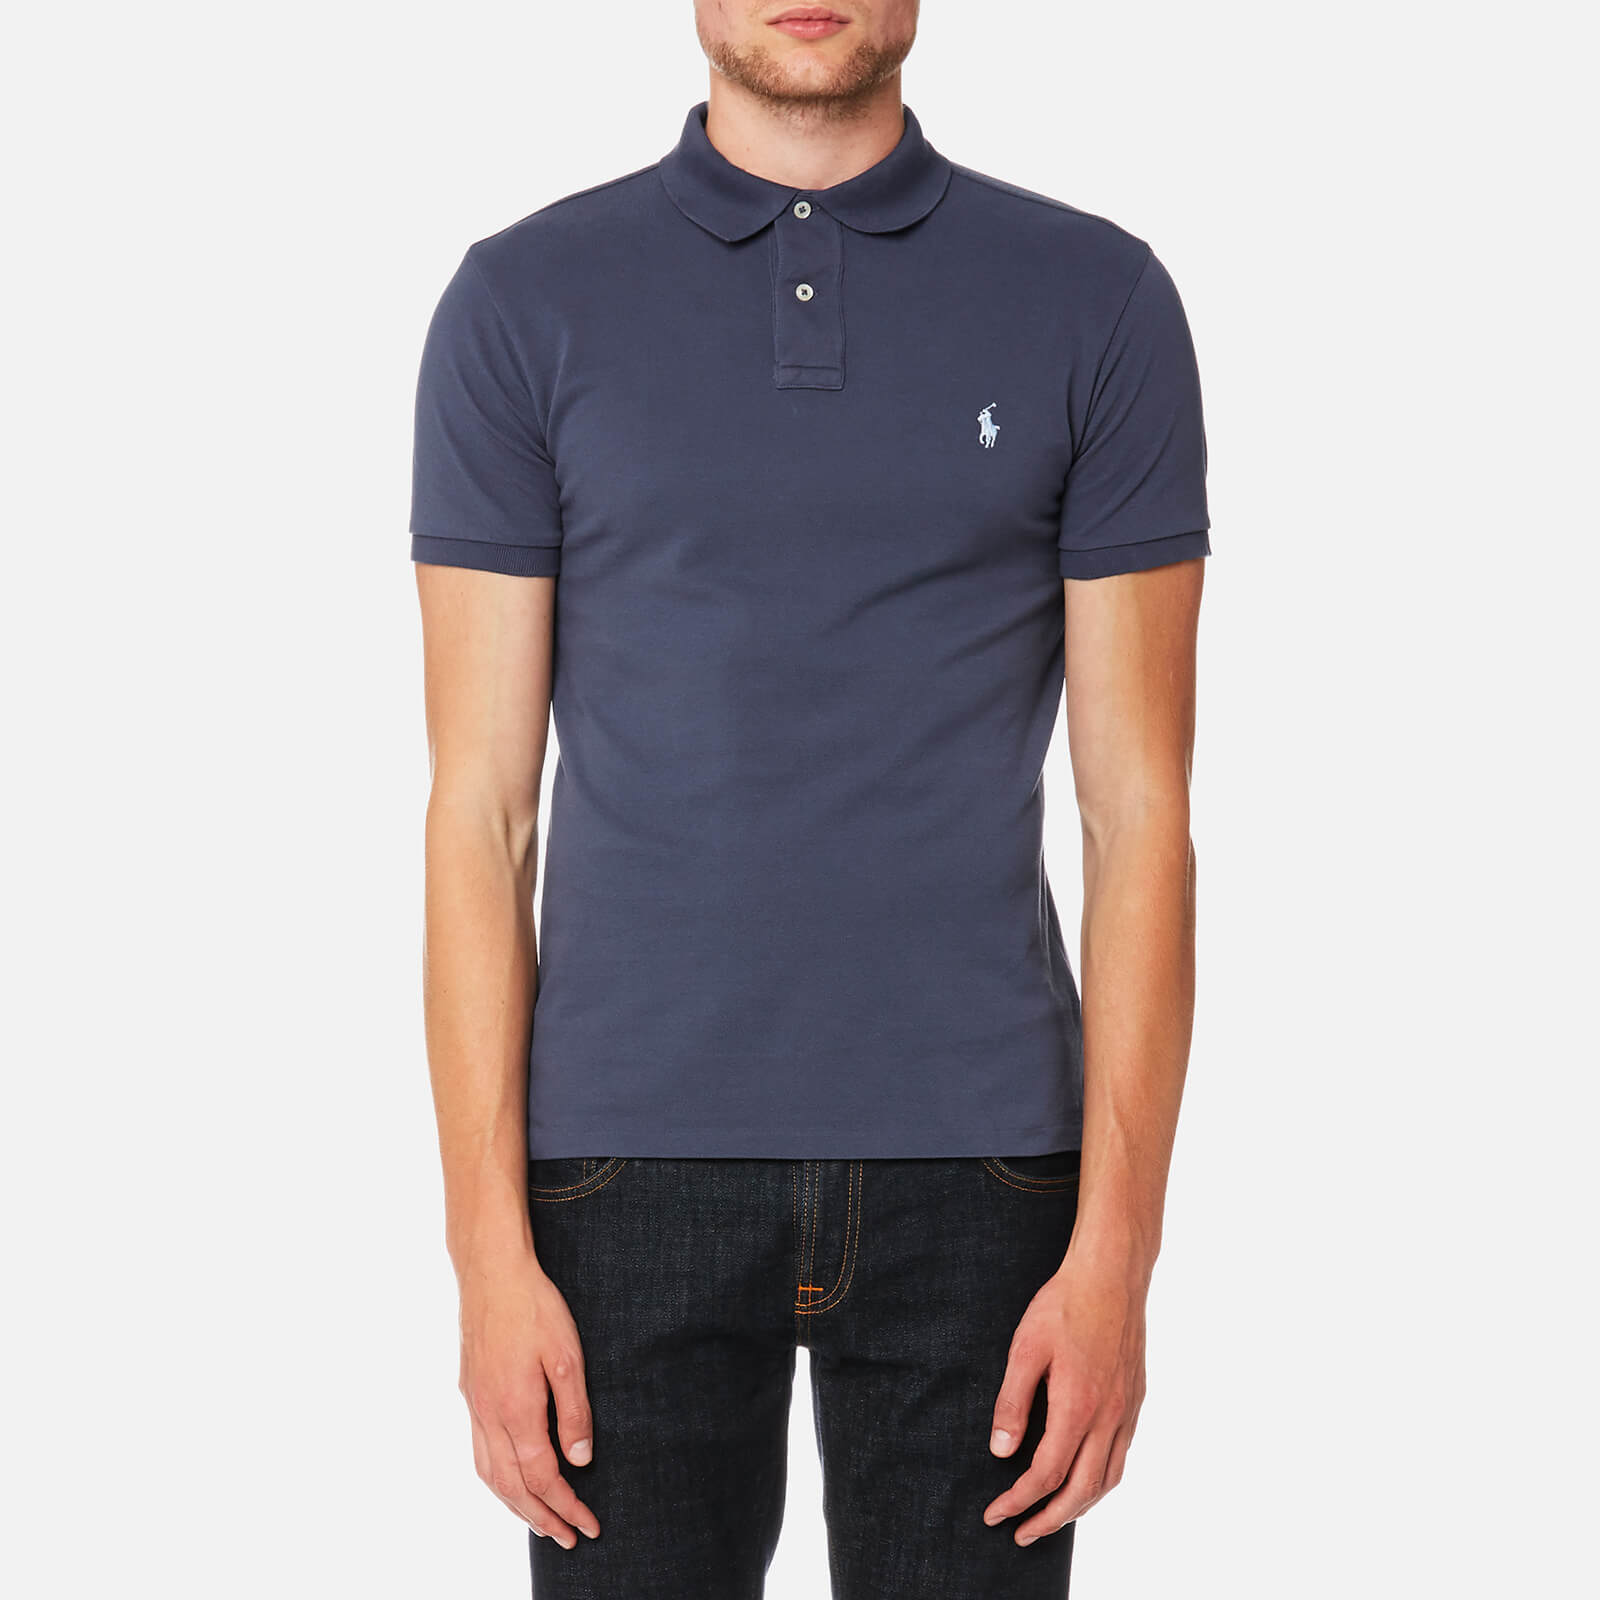 622c79ff4 Polo Ralph Lauren Men s Slim Fit Mesh Polo Shirt - Boston Navy - Free UK  Delivery over £50